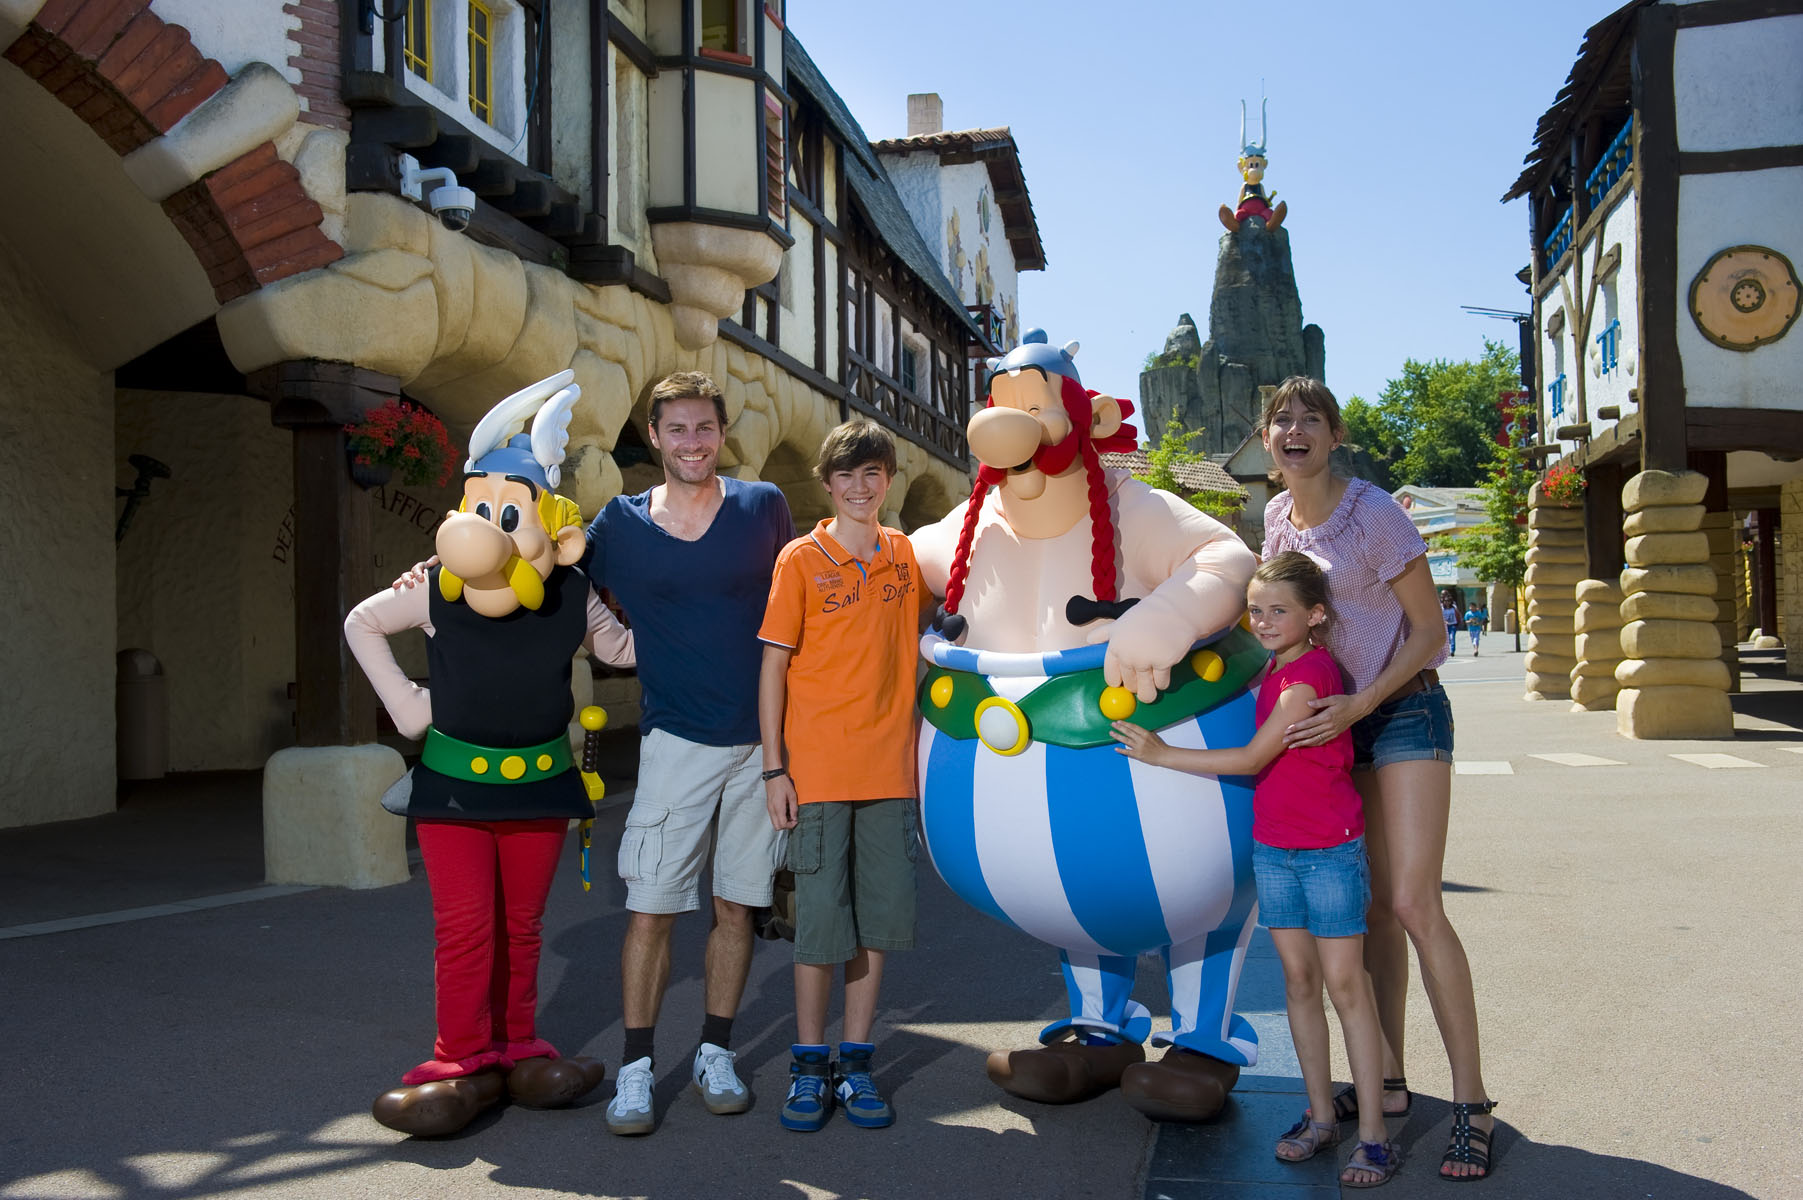 467/import-from-v1/images/Loisirs/57-parc-asterix_1.jpg